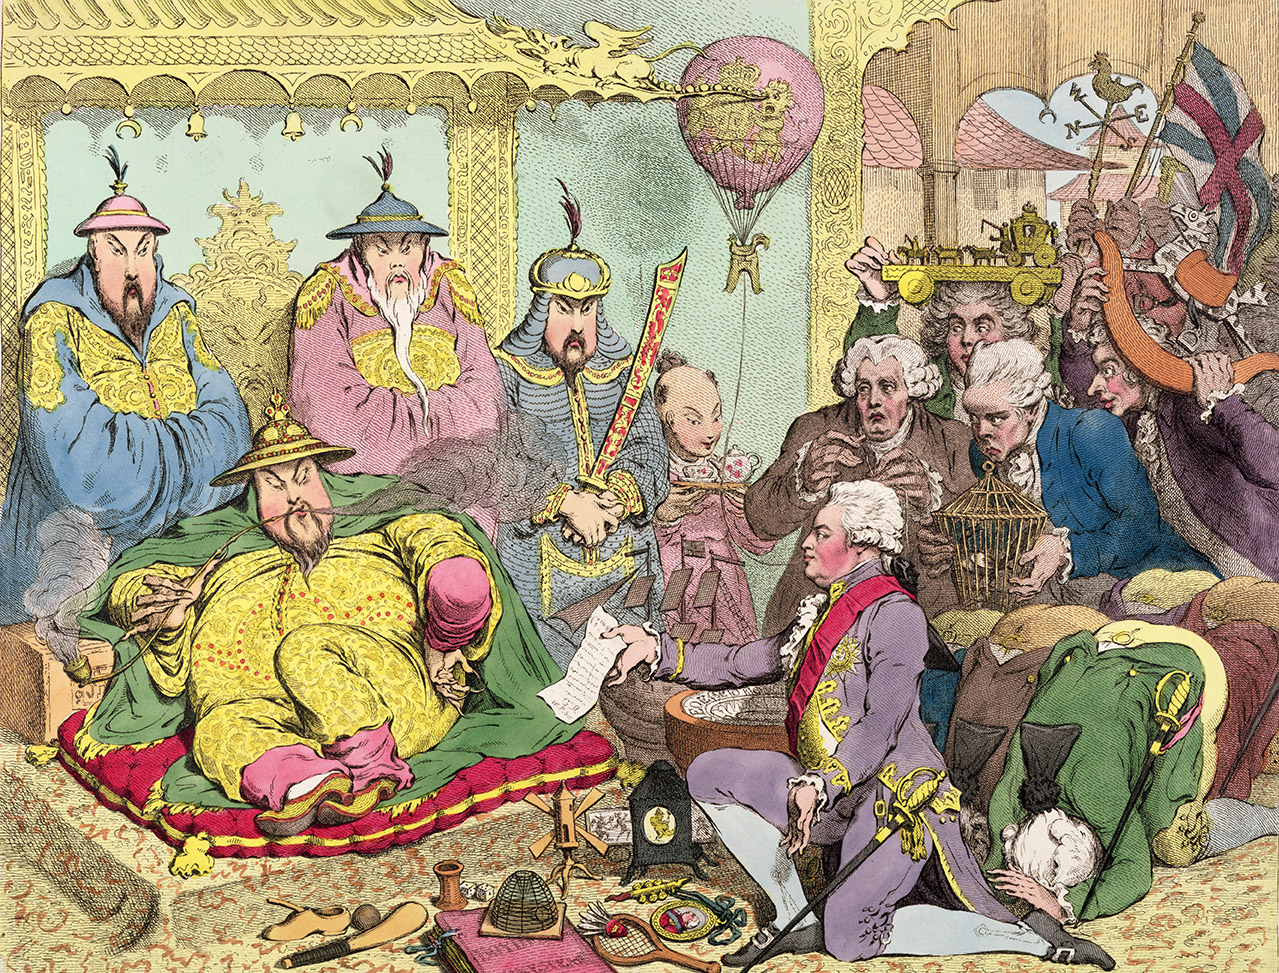 The Reception of the Diplomatique and His Suite, at the Court of Pekin, by James Gillray, 1792